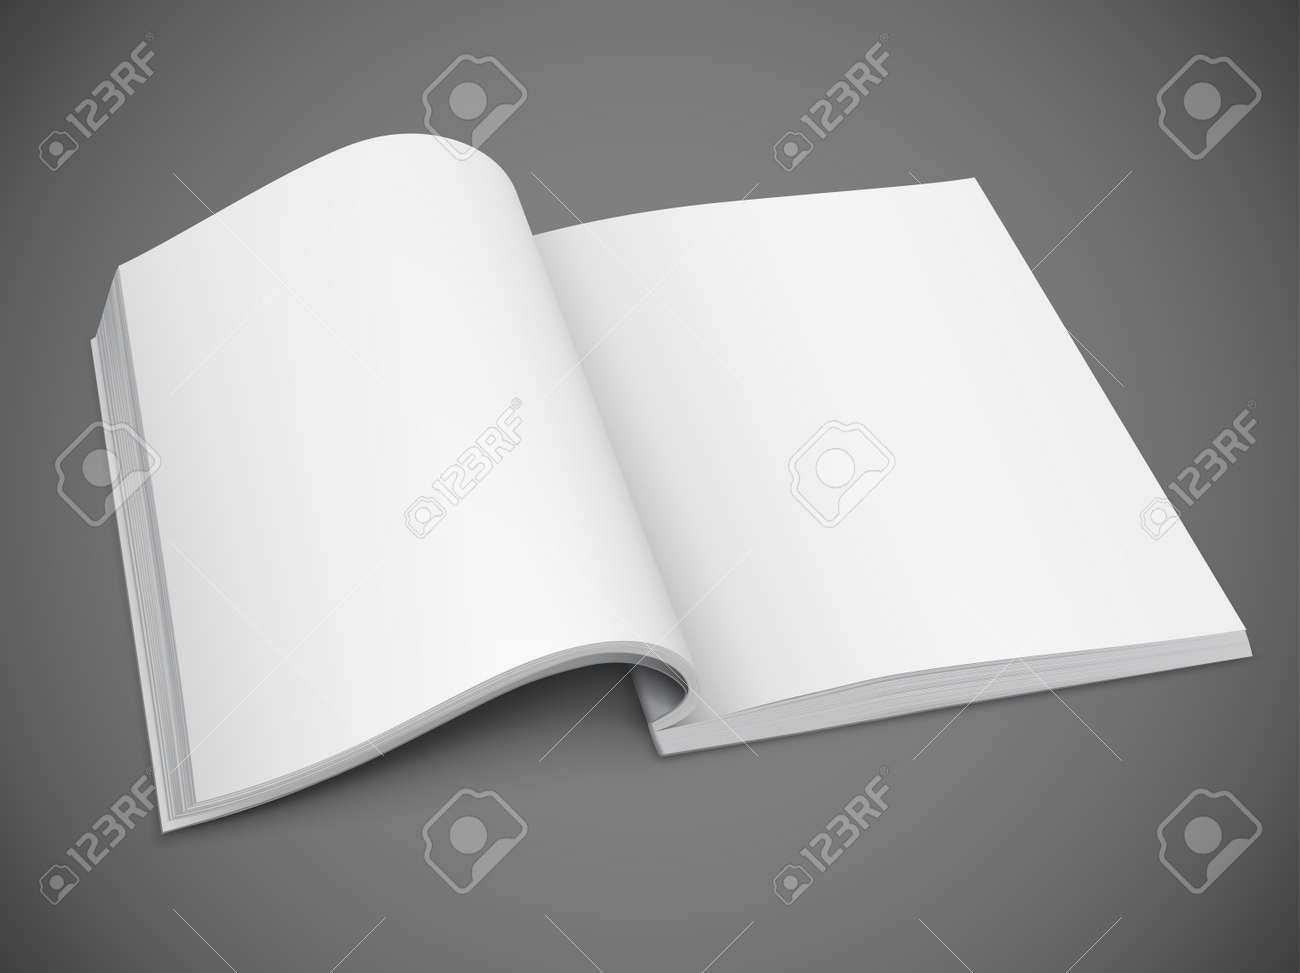 open spread of book with blank white pages vector illustration gradient mesh used EPS10. Transparent objects used for shadows and lights drawing. Stock Vector - 14601255